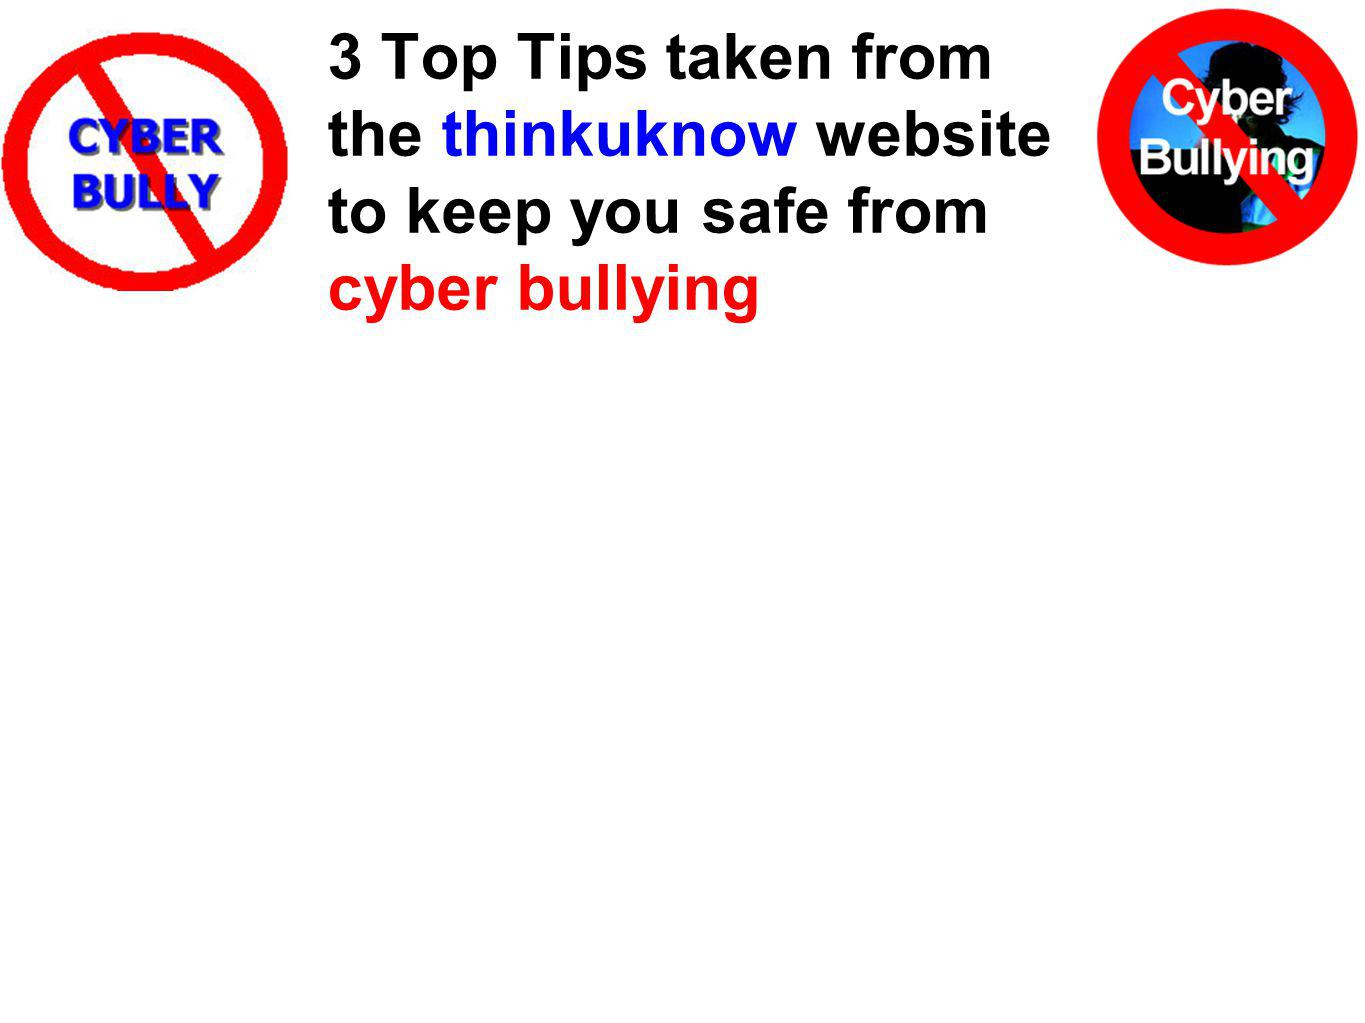 3 Top Tips taken from the thinkuknow website to keep you safe from cyber bullying